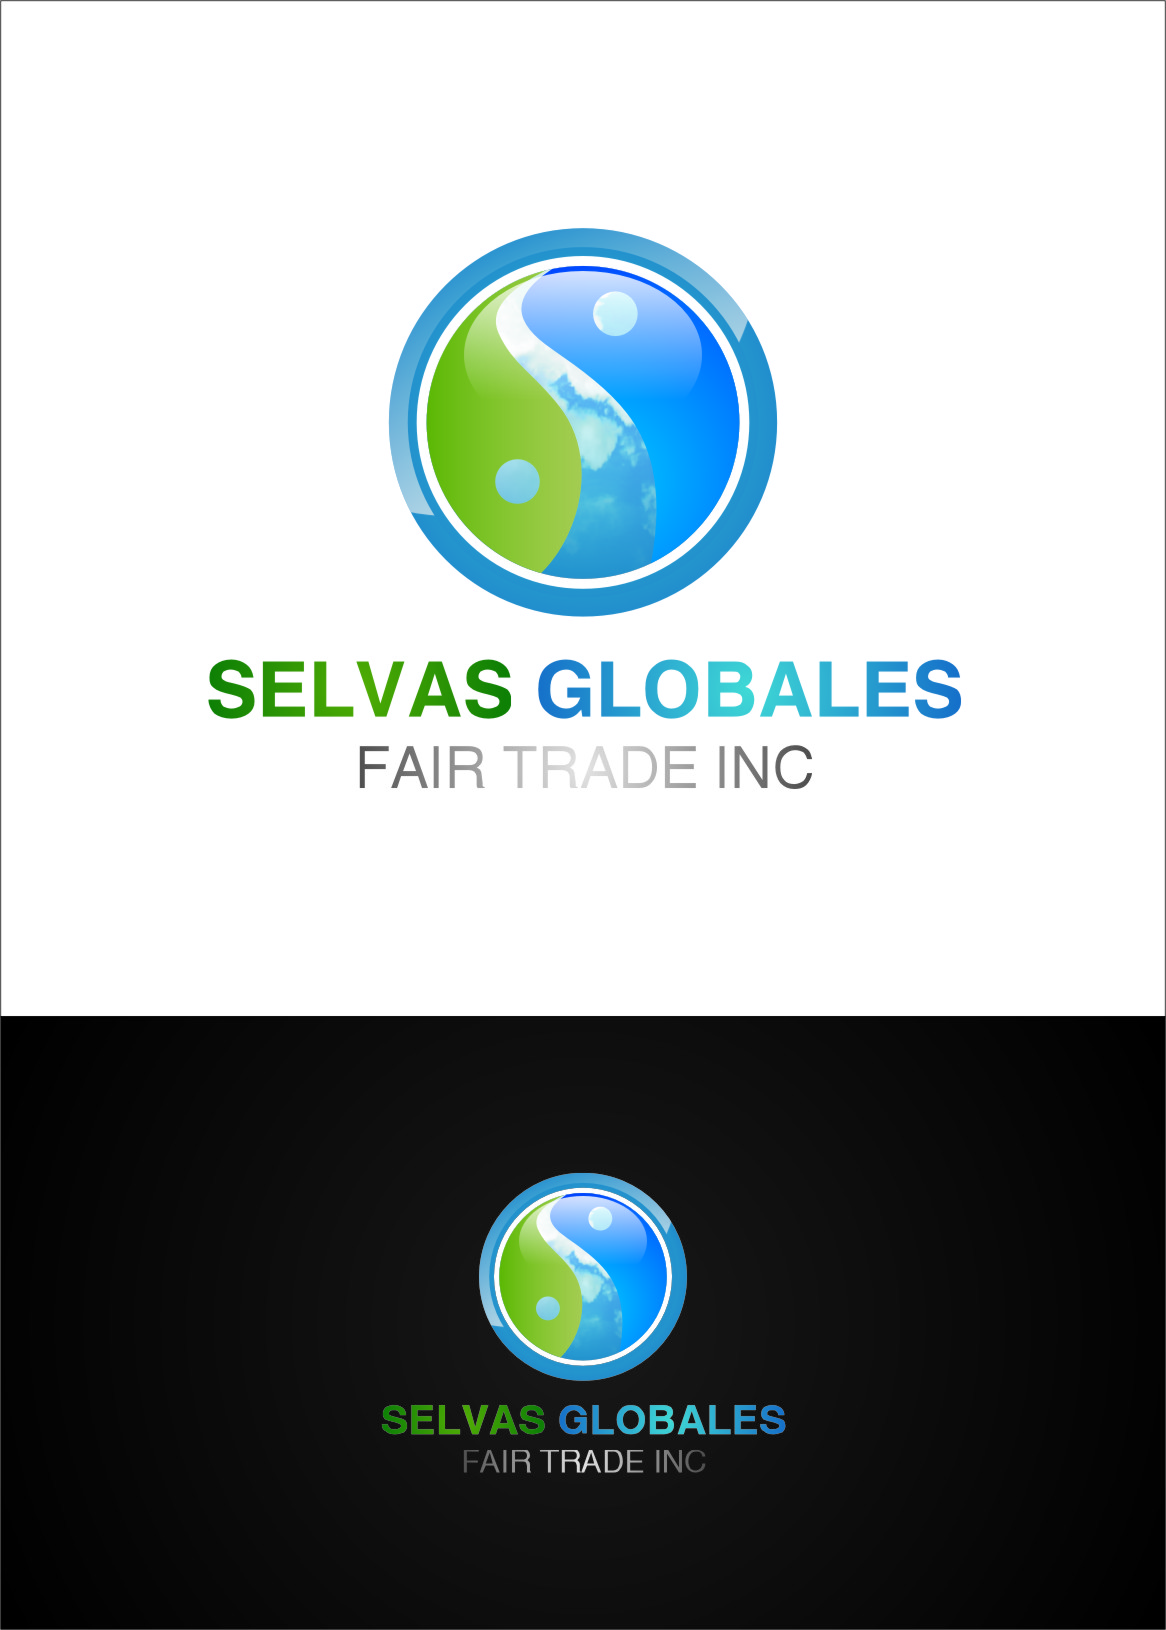 Logo Design by Ngepet_art - Entry No. 127 in the Logo Design Contest Captivating Logo Design for Selvas Globales Fair Trade Inc..